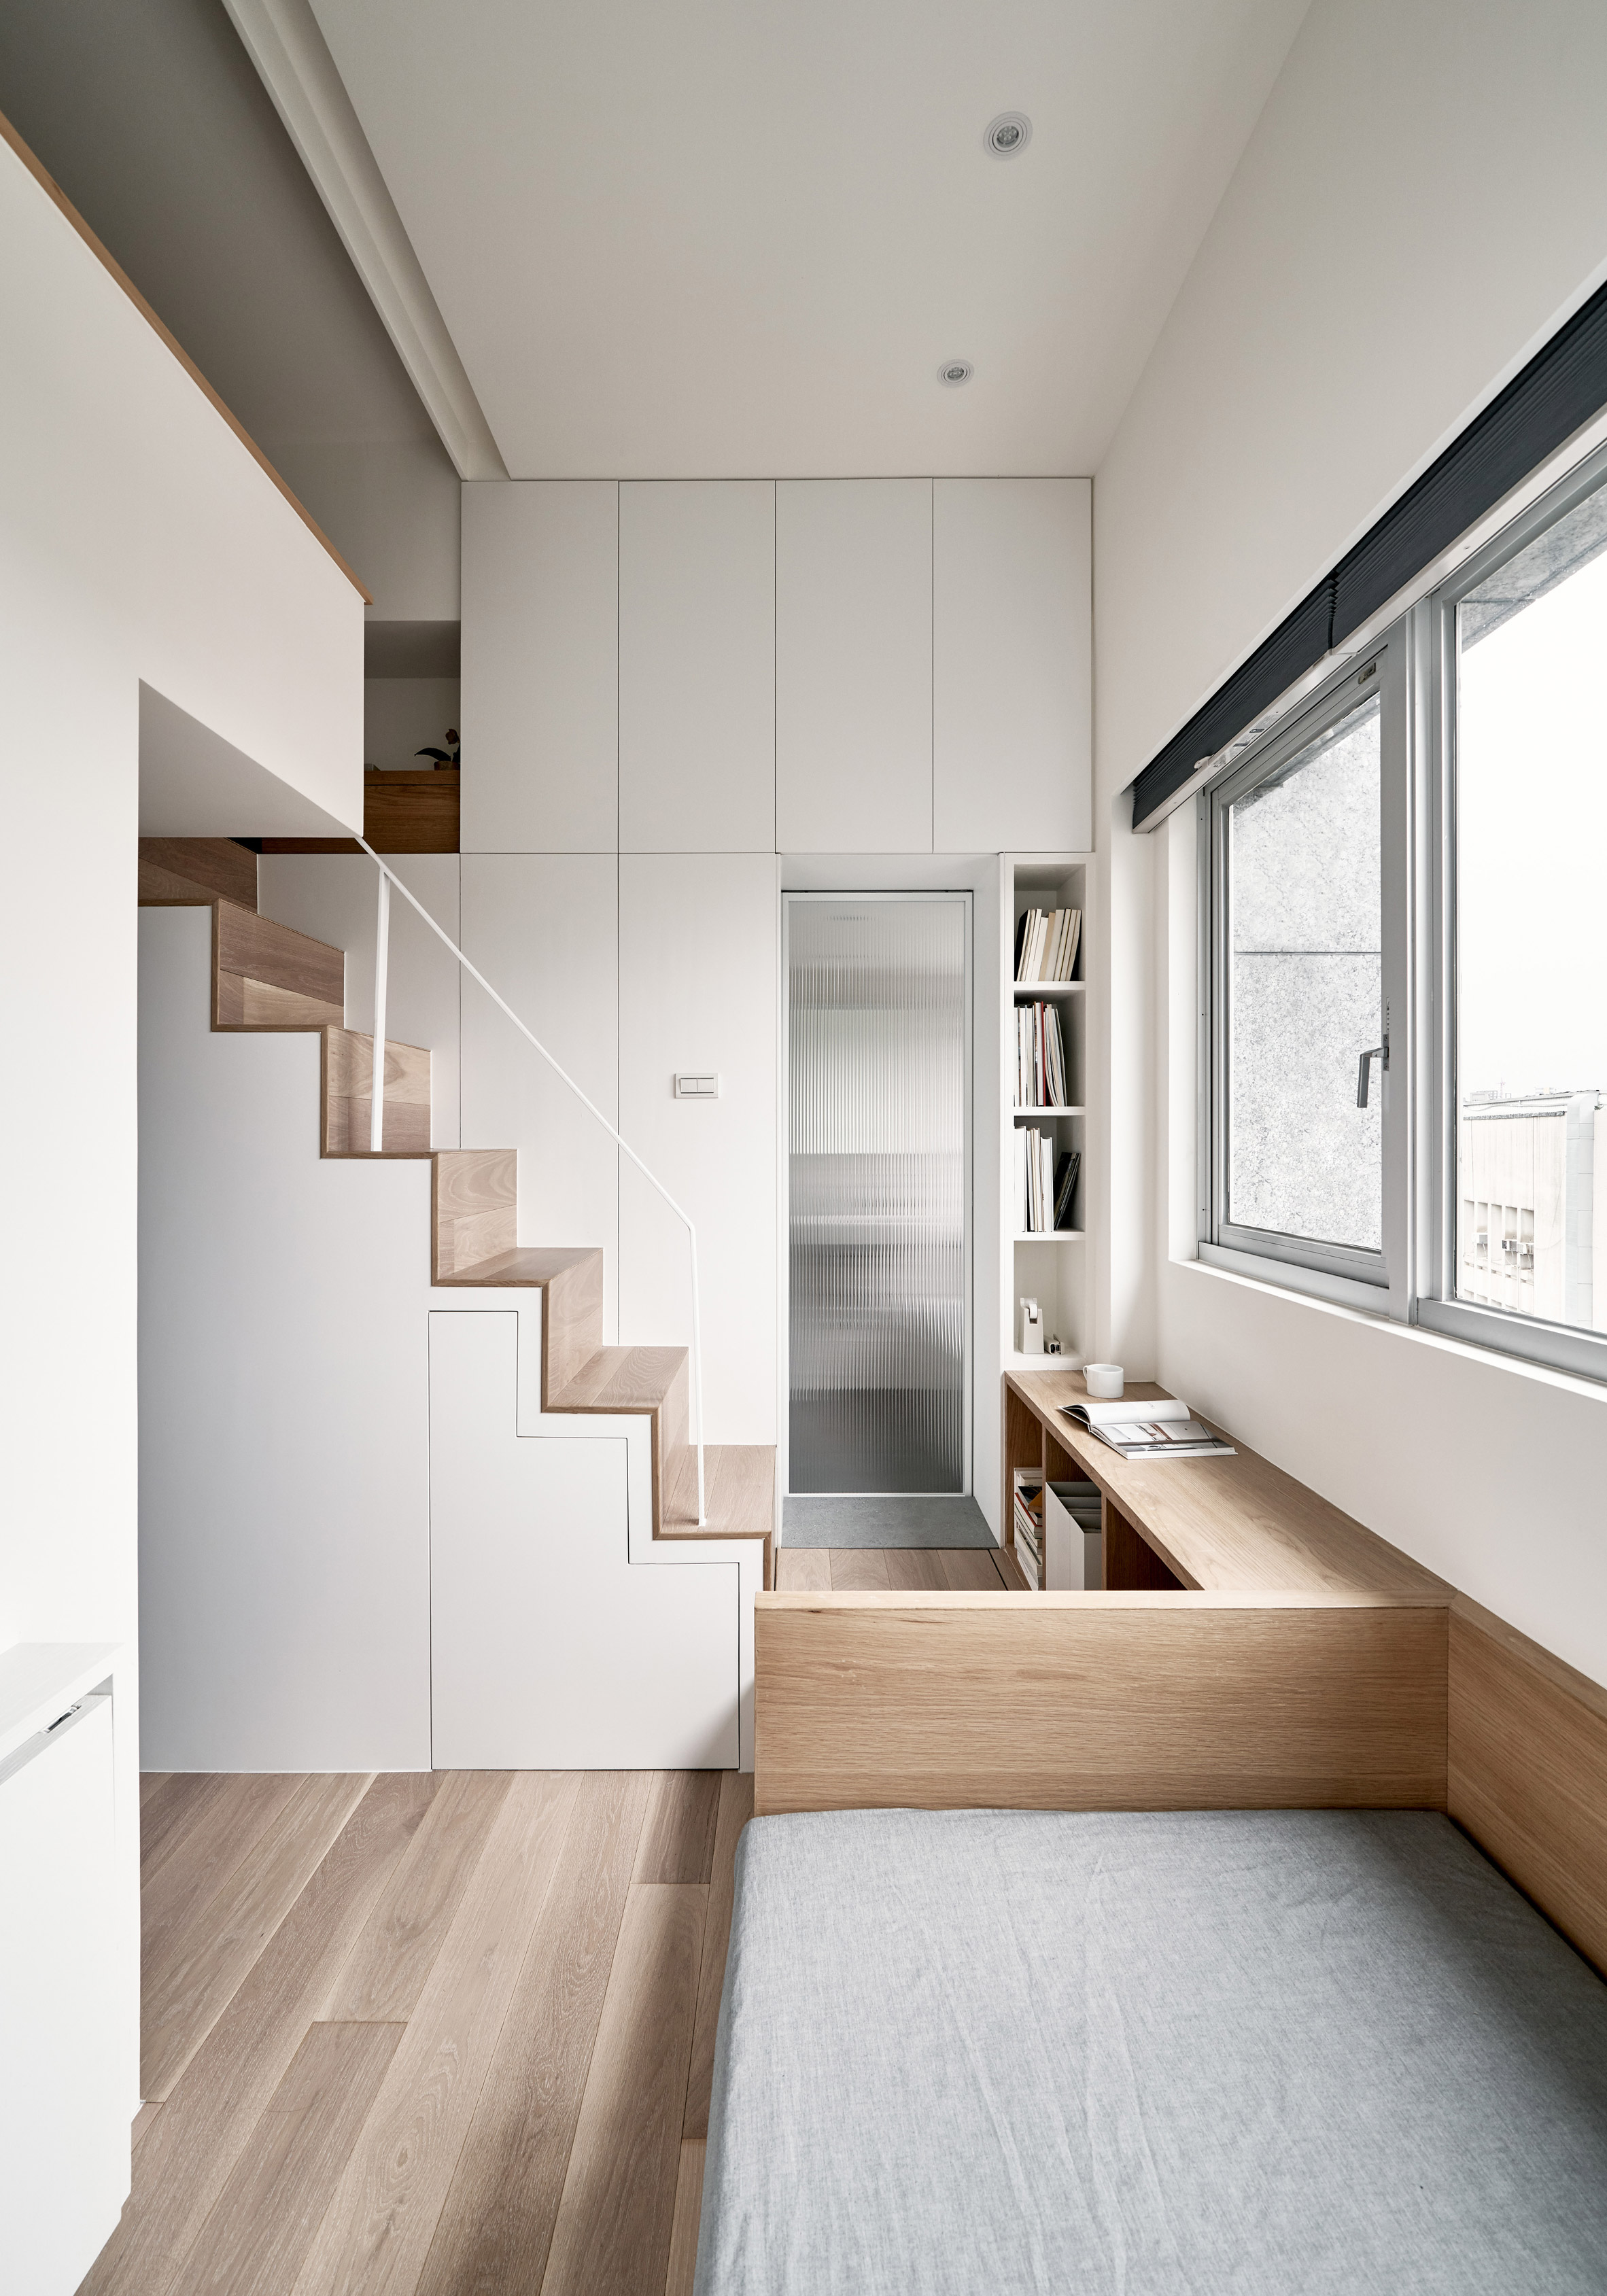 Taiwanese Studio A Little Design Creates 17 6 Square Metre Micro Flat In Taiwan